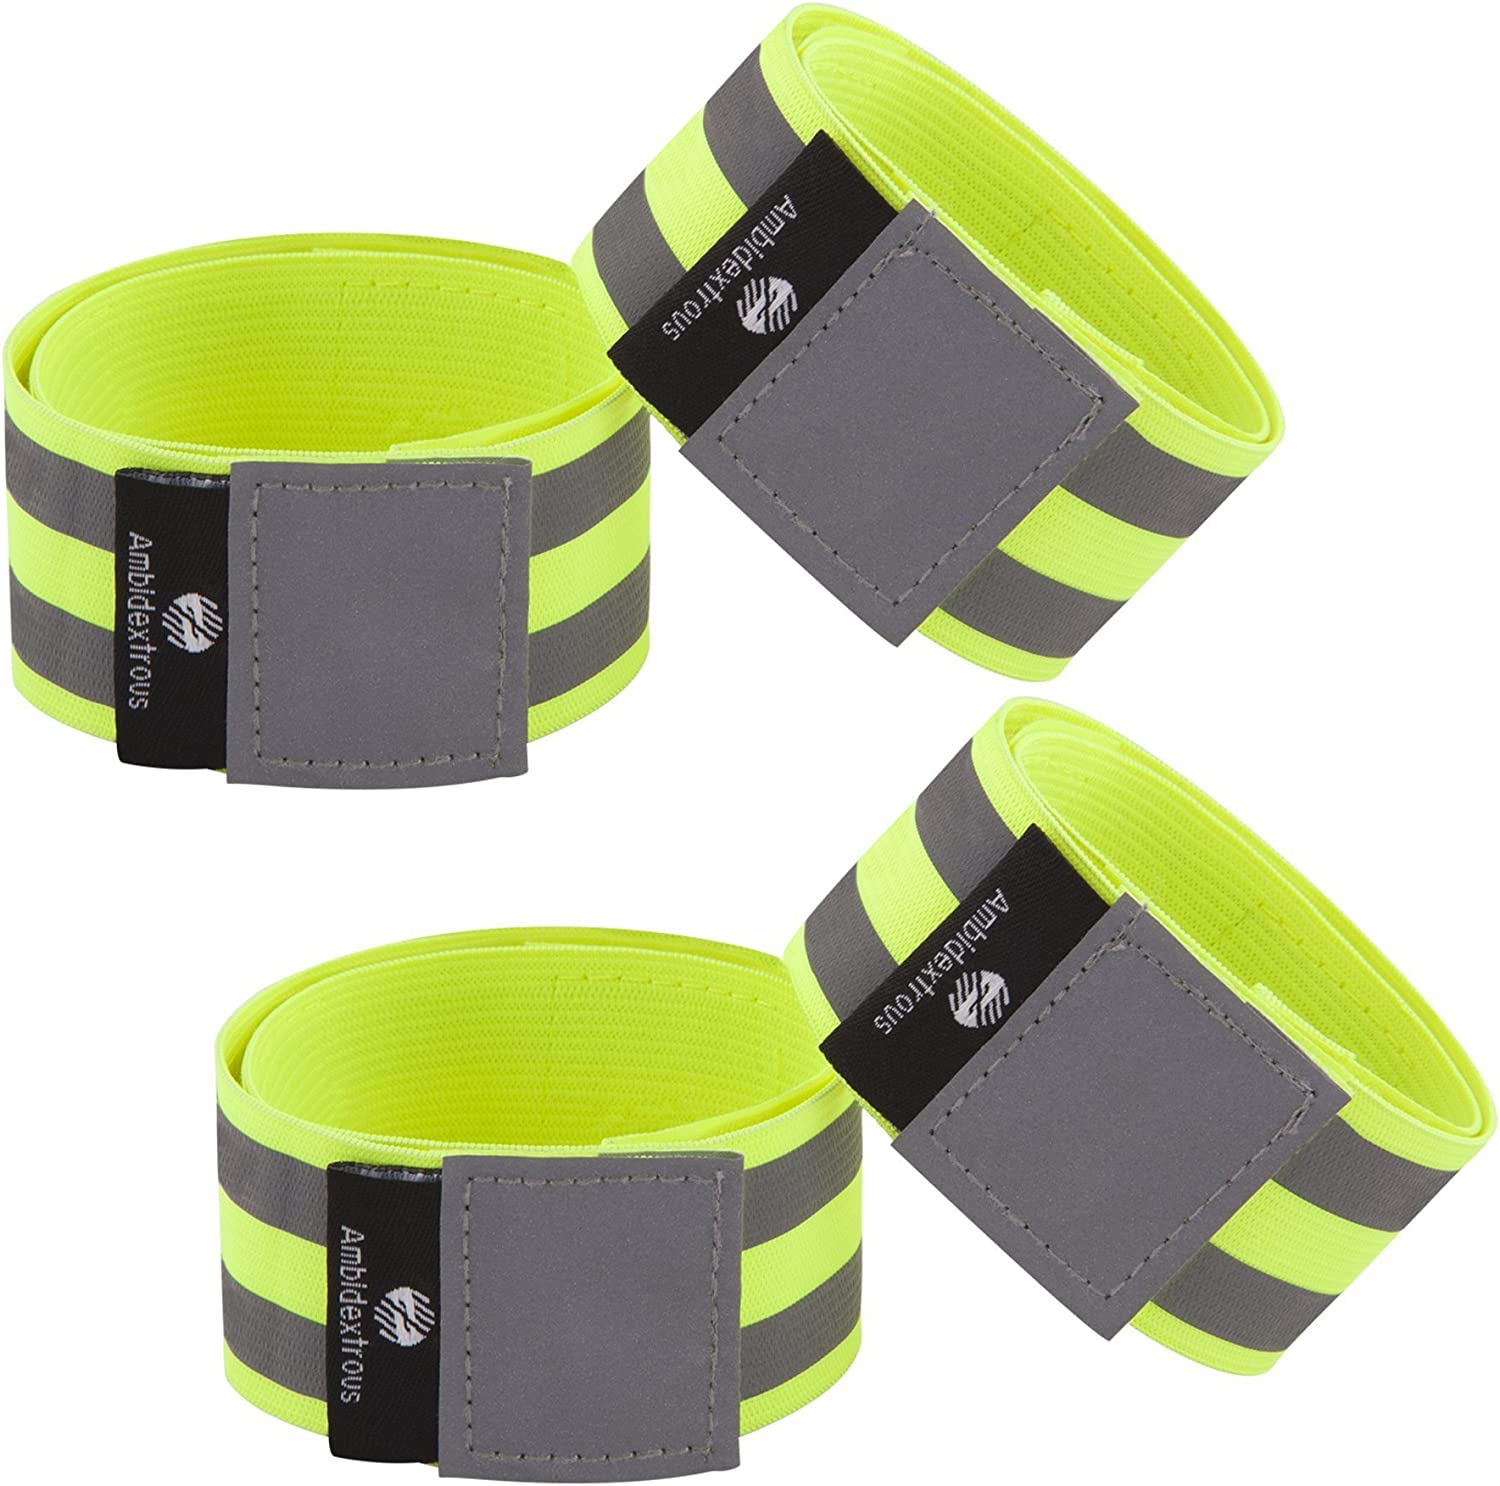 Reflective Bands for Men and Women | Reflectors for Runners, Cycling, Walking | Set of 4 Reflective Ankle Bands, Armbands, Wristbands | Reflector Tape Providing High Visibility Safety Apparel : Sports & Outdoors